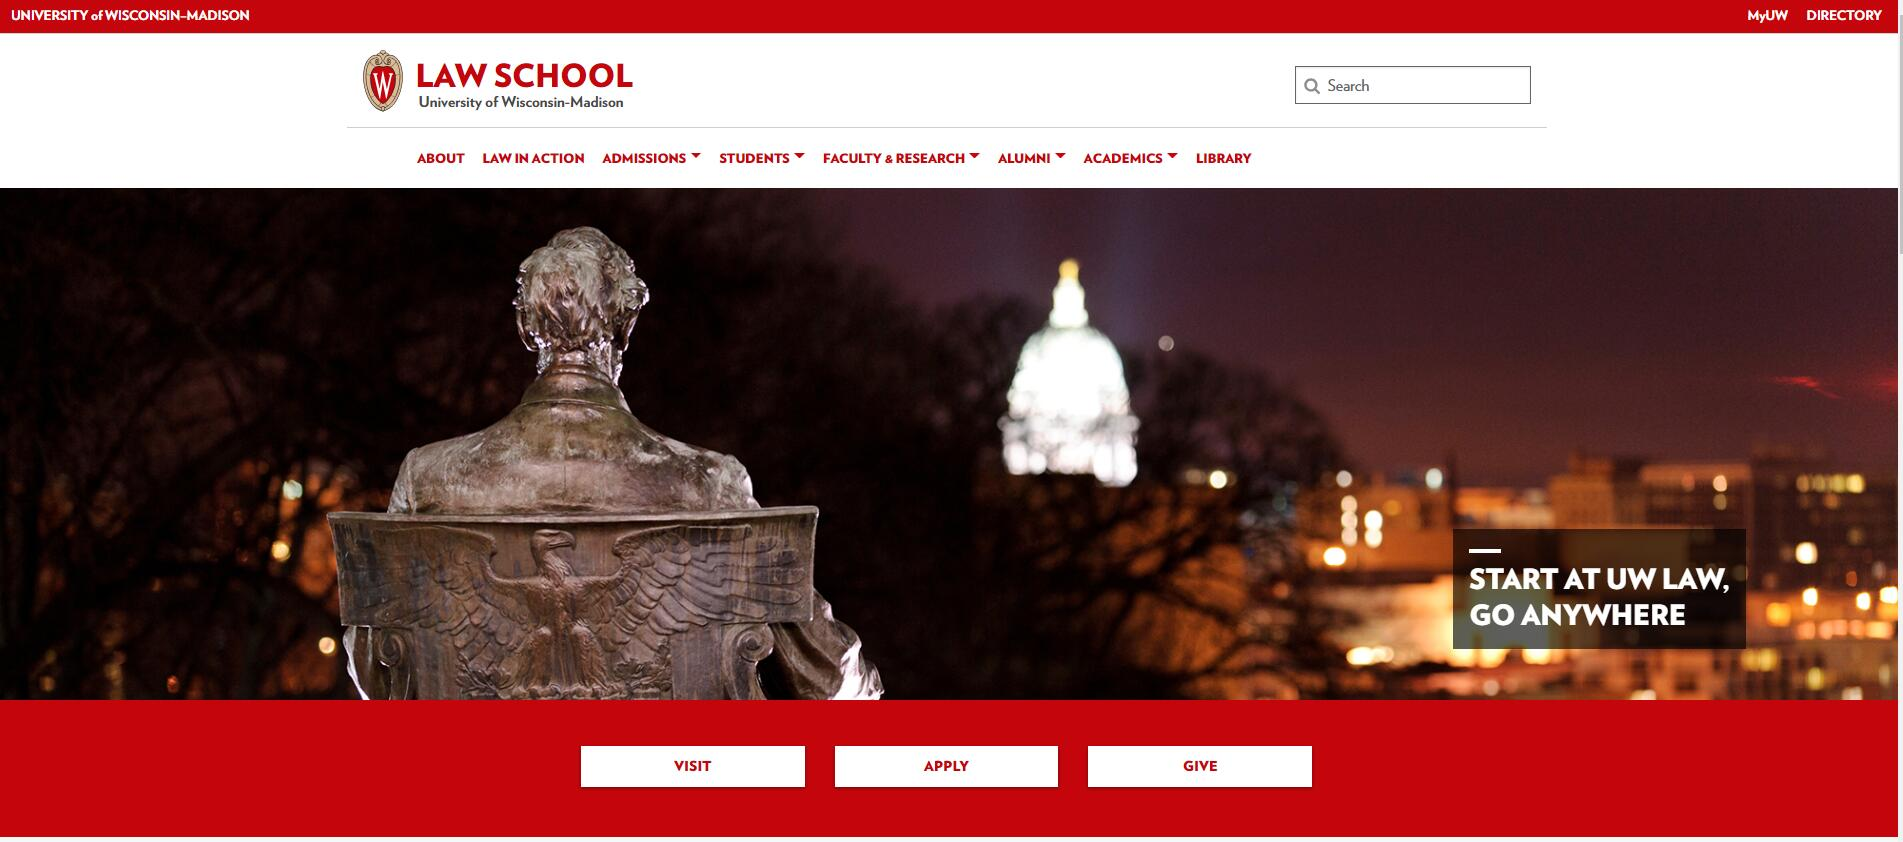 The Law School at University of Wisconsin--Madison